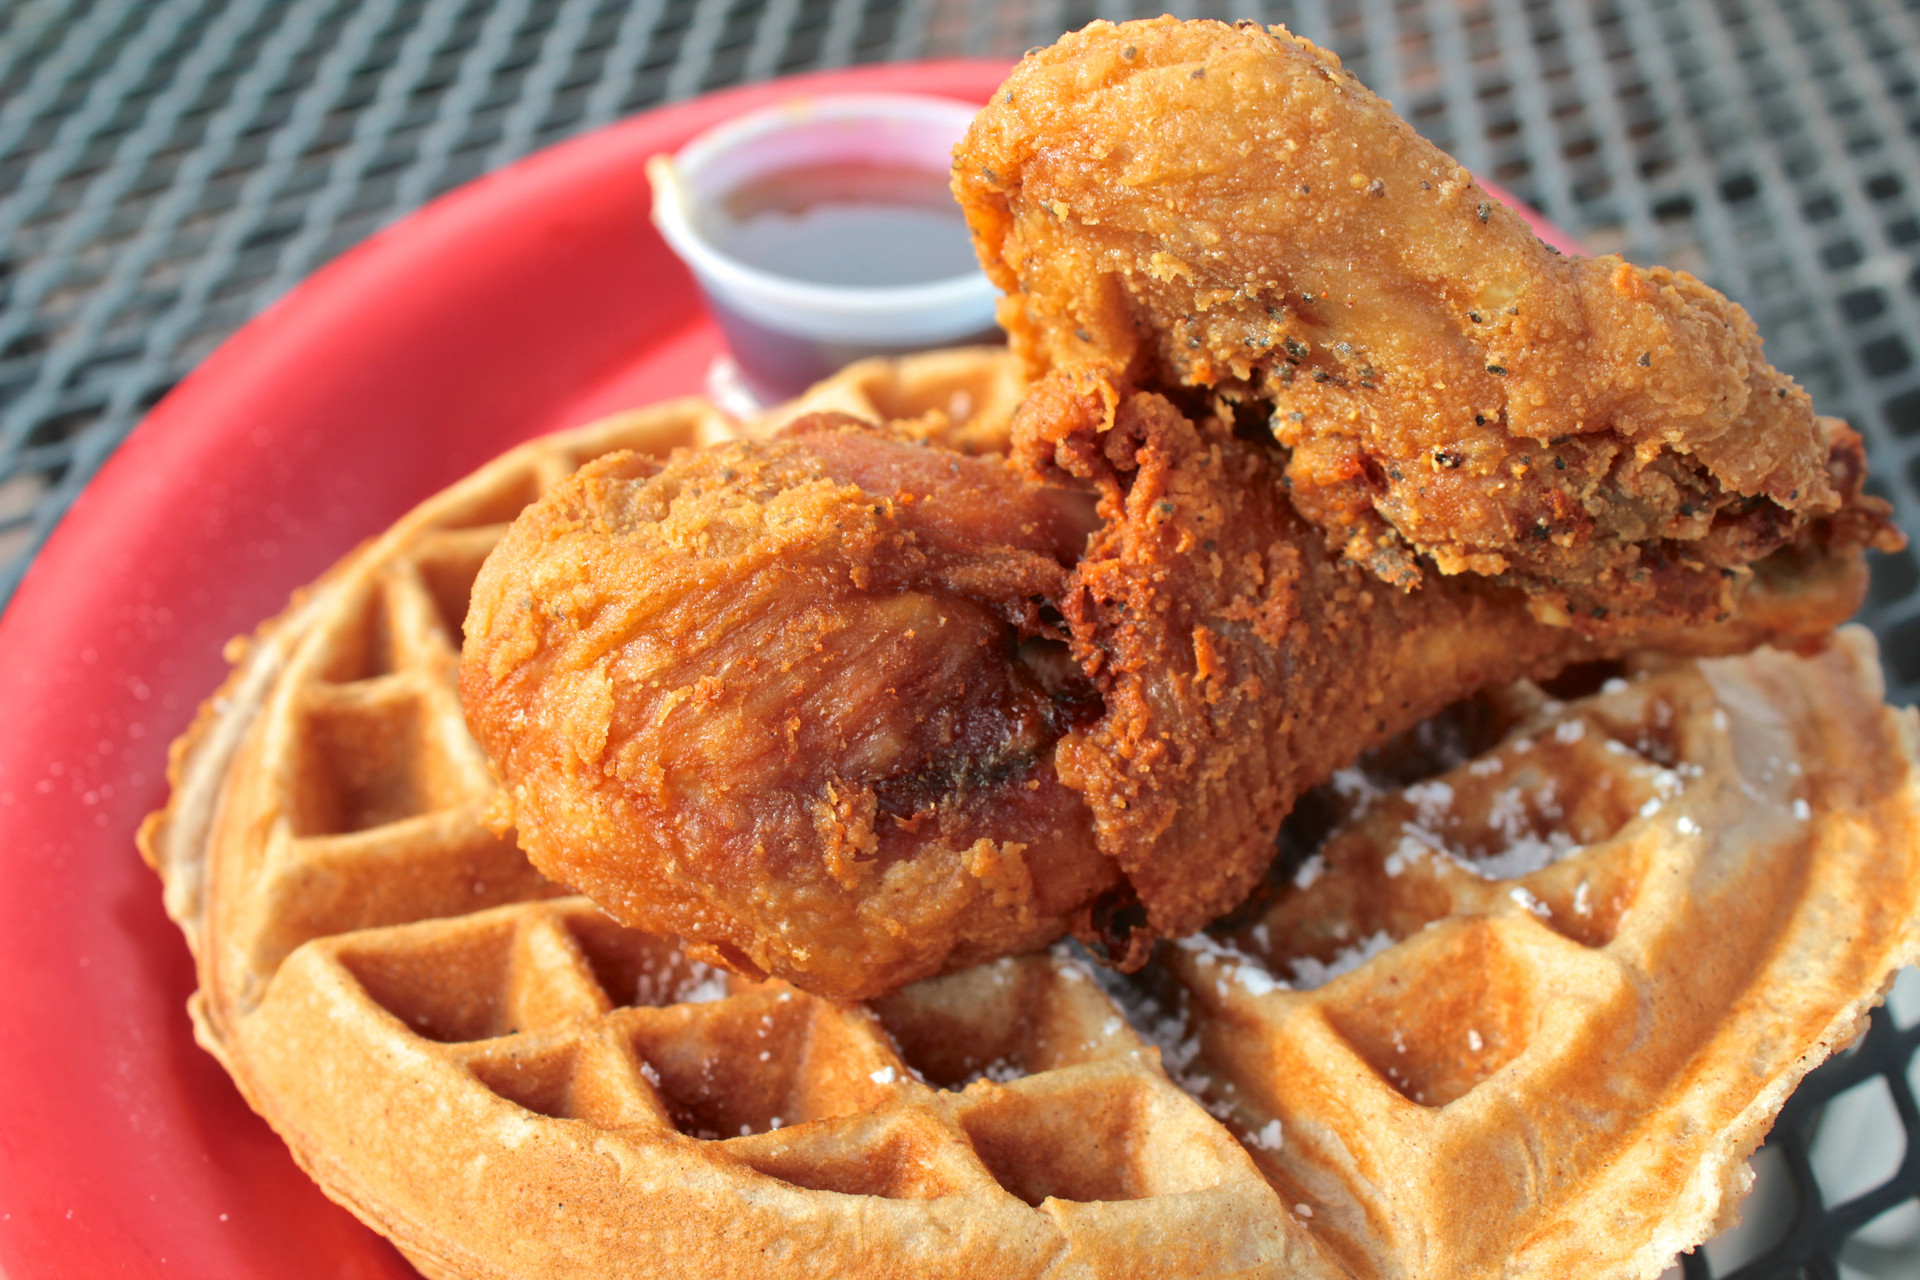 Kfc Chicken And Waffles  Guide to 10 Favorite South Bay Restaurants Serving